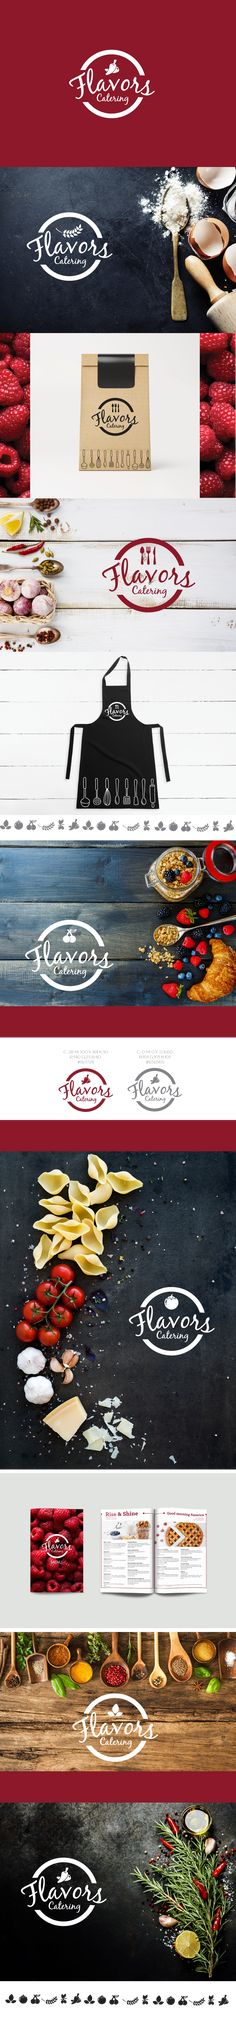 Flavors catering: Dynamic logo project + website